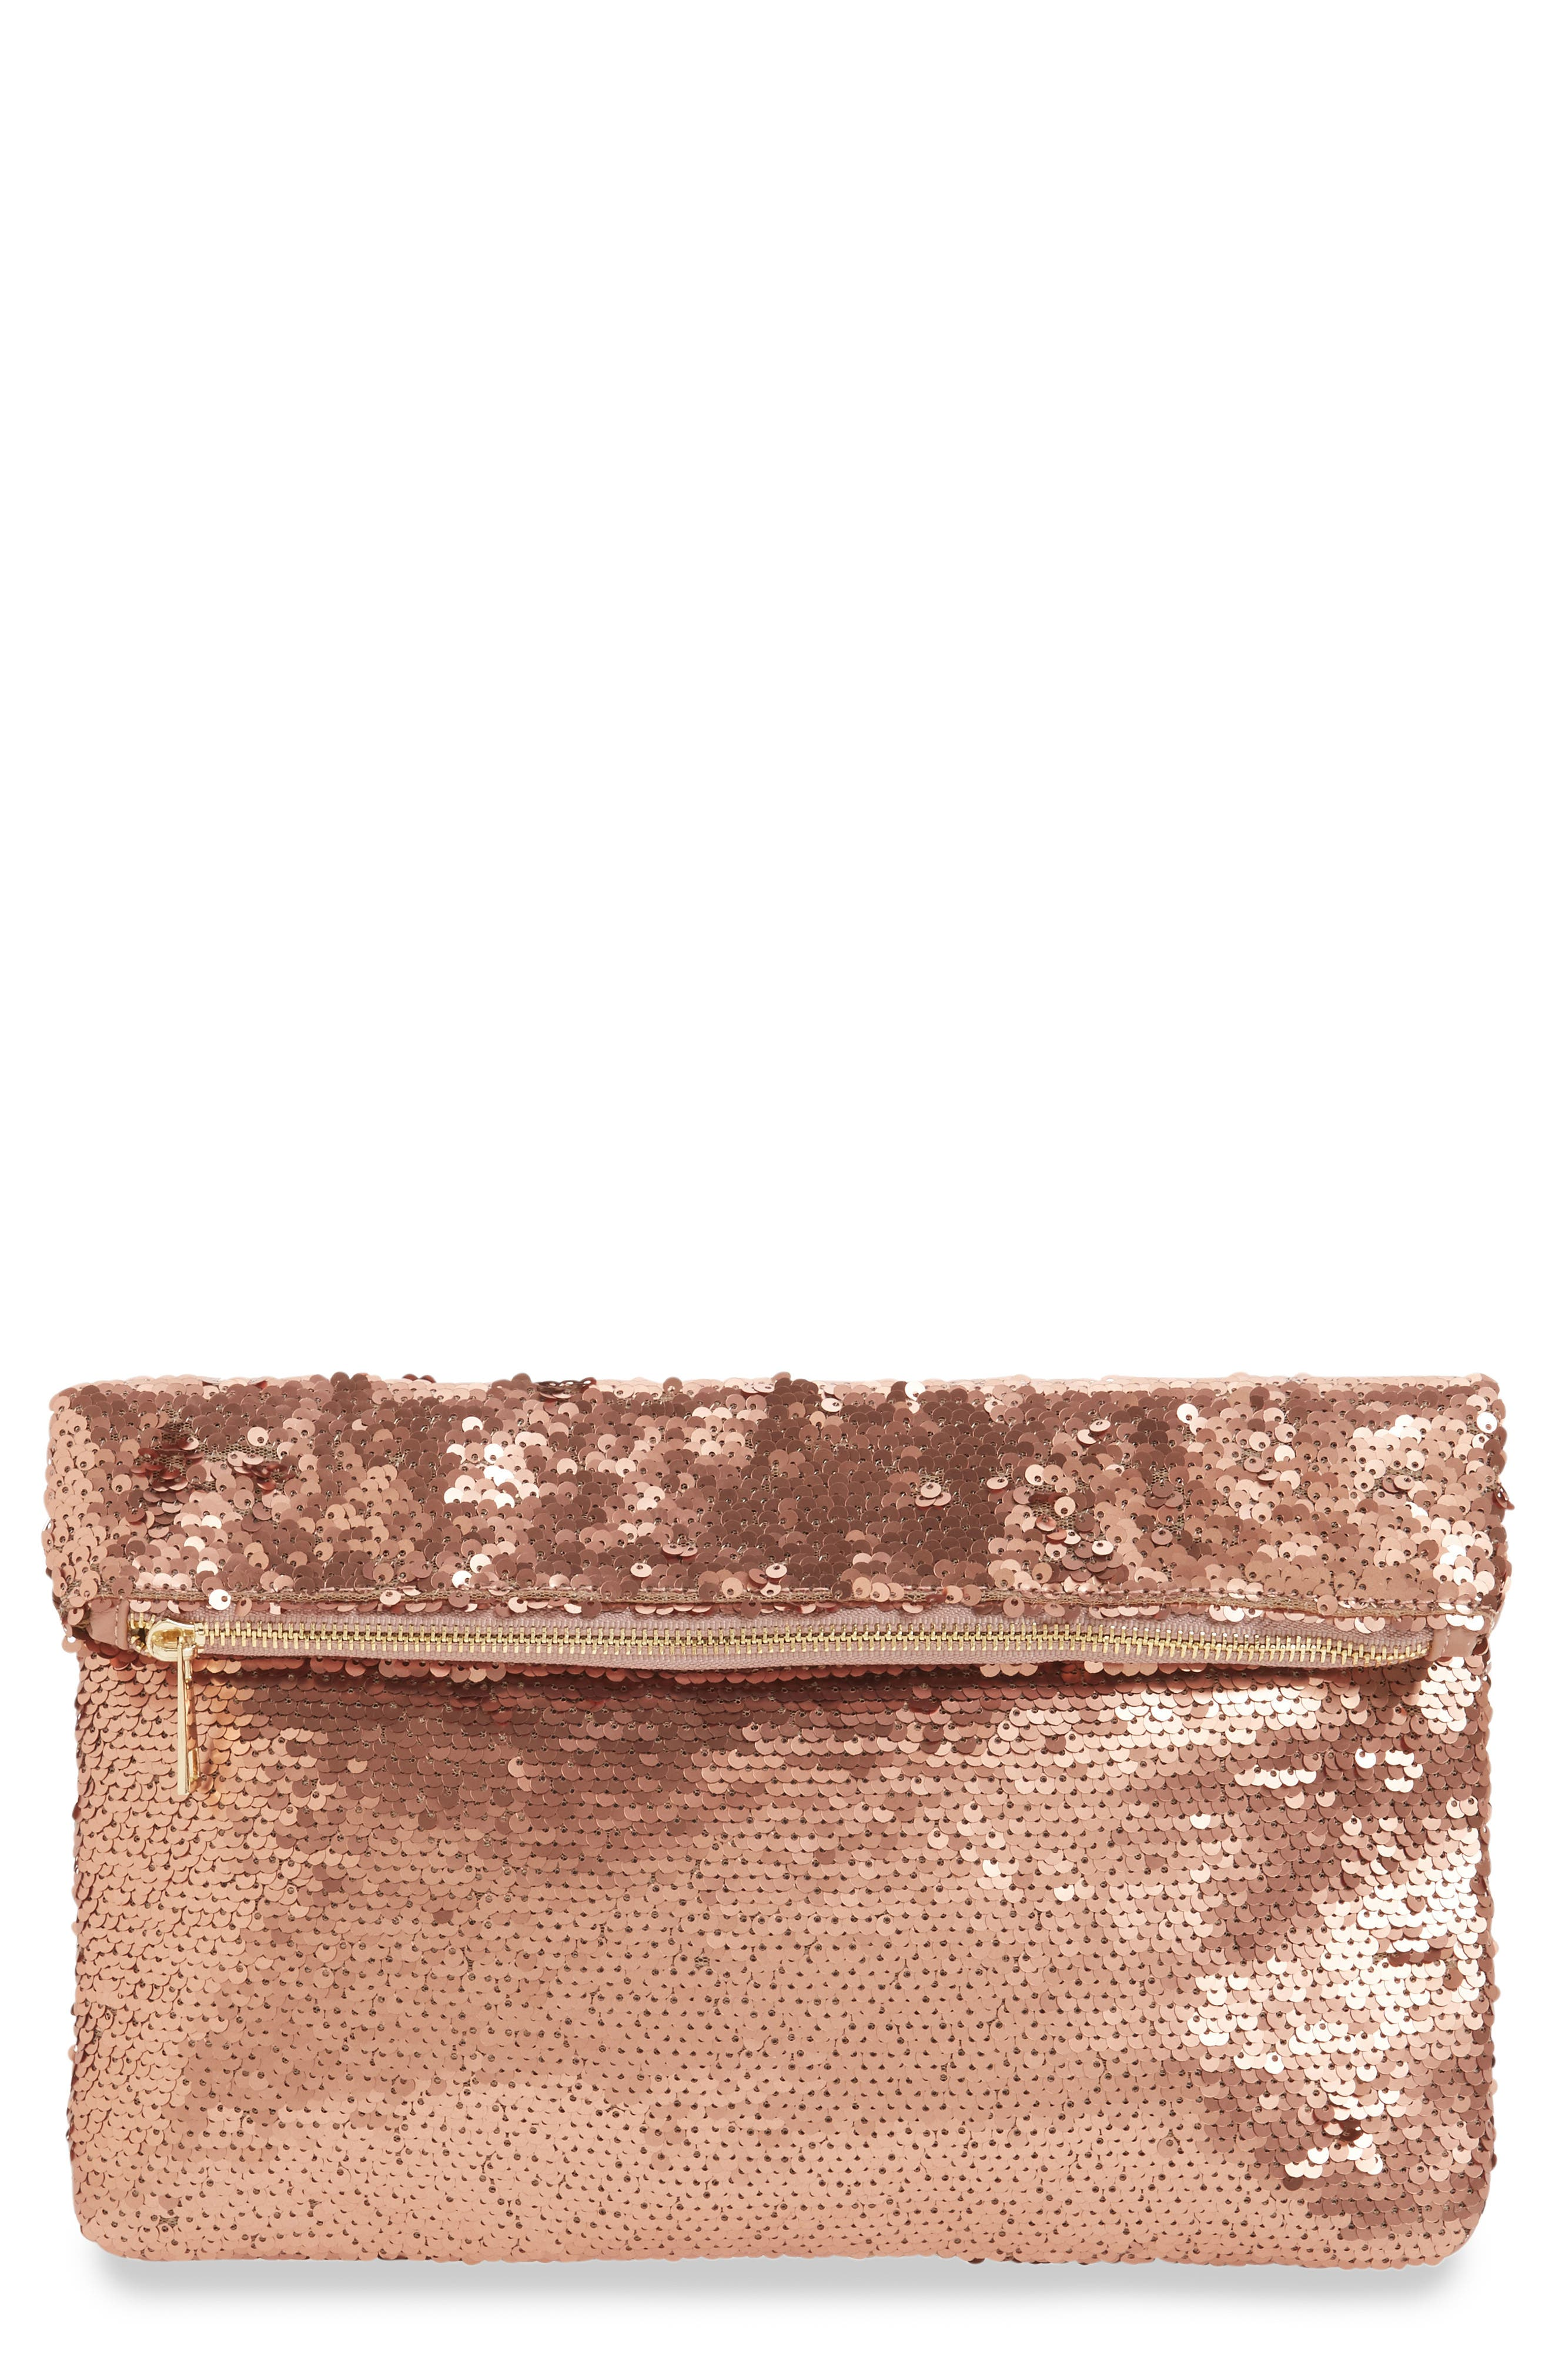 Sequin Foldover Clutch, Main, color, 200